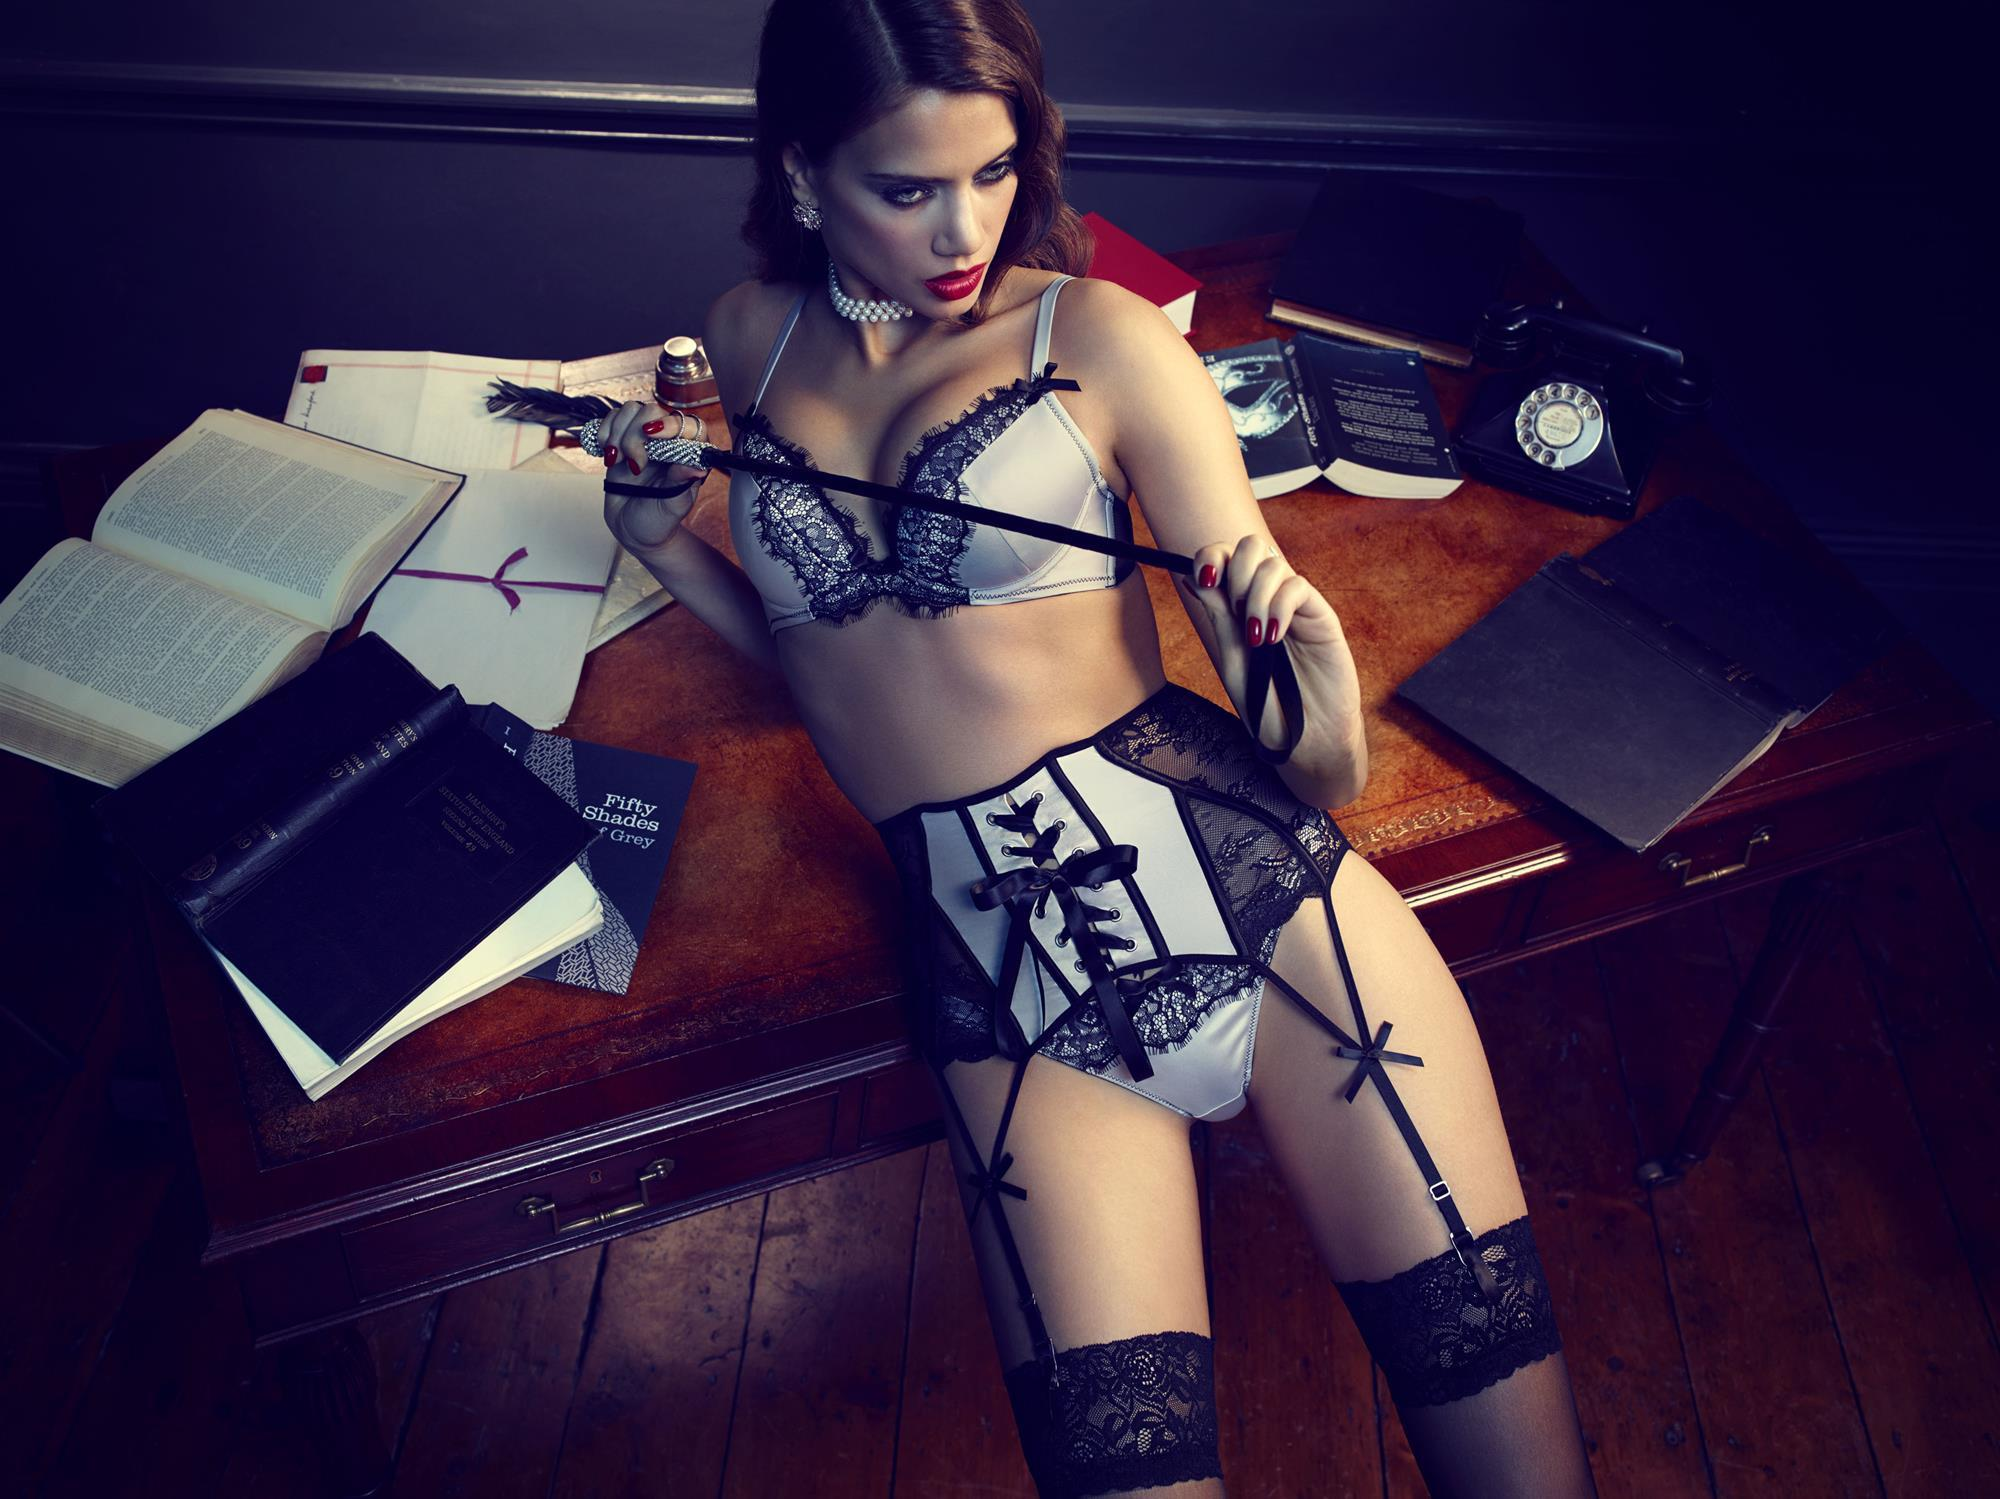 dd79e687cb906 Ann Summers' sales surge following launch of Fifty Shades of Grey film